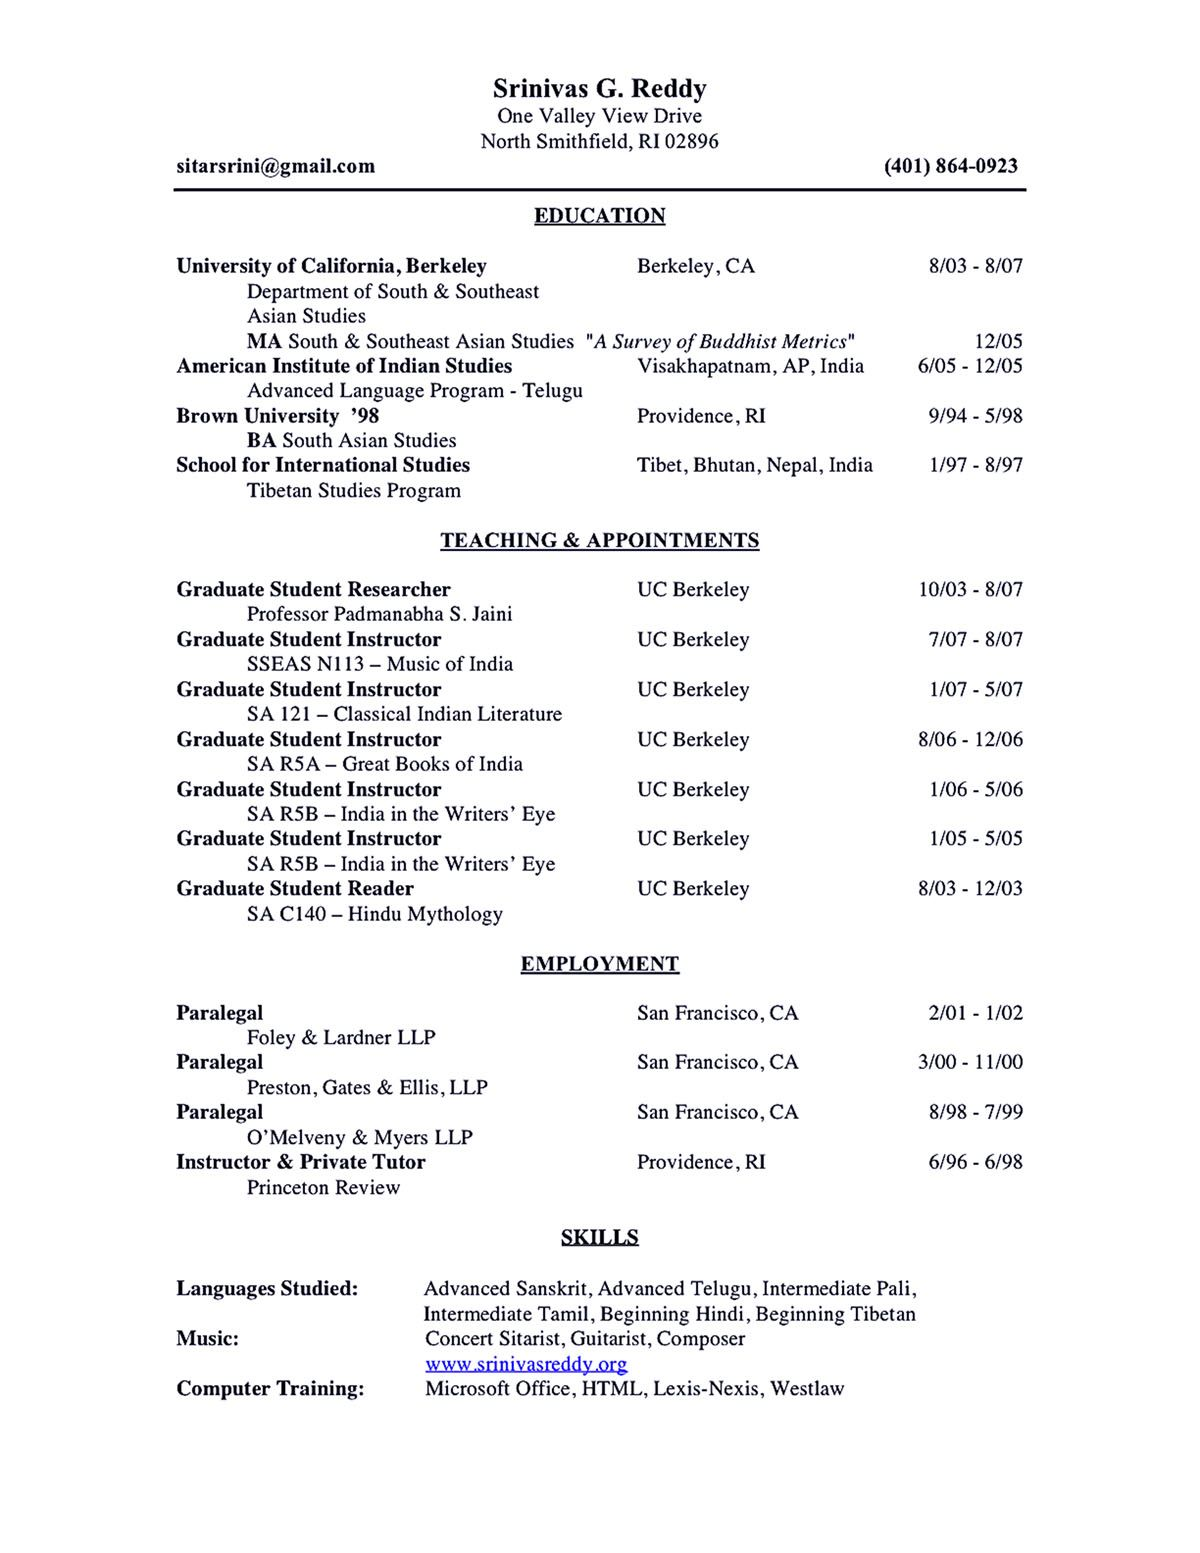 Resume Templates Latex Academic Resume Sample Shows You How To Make Academic Resume